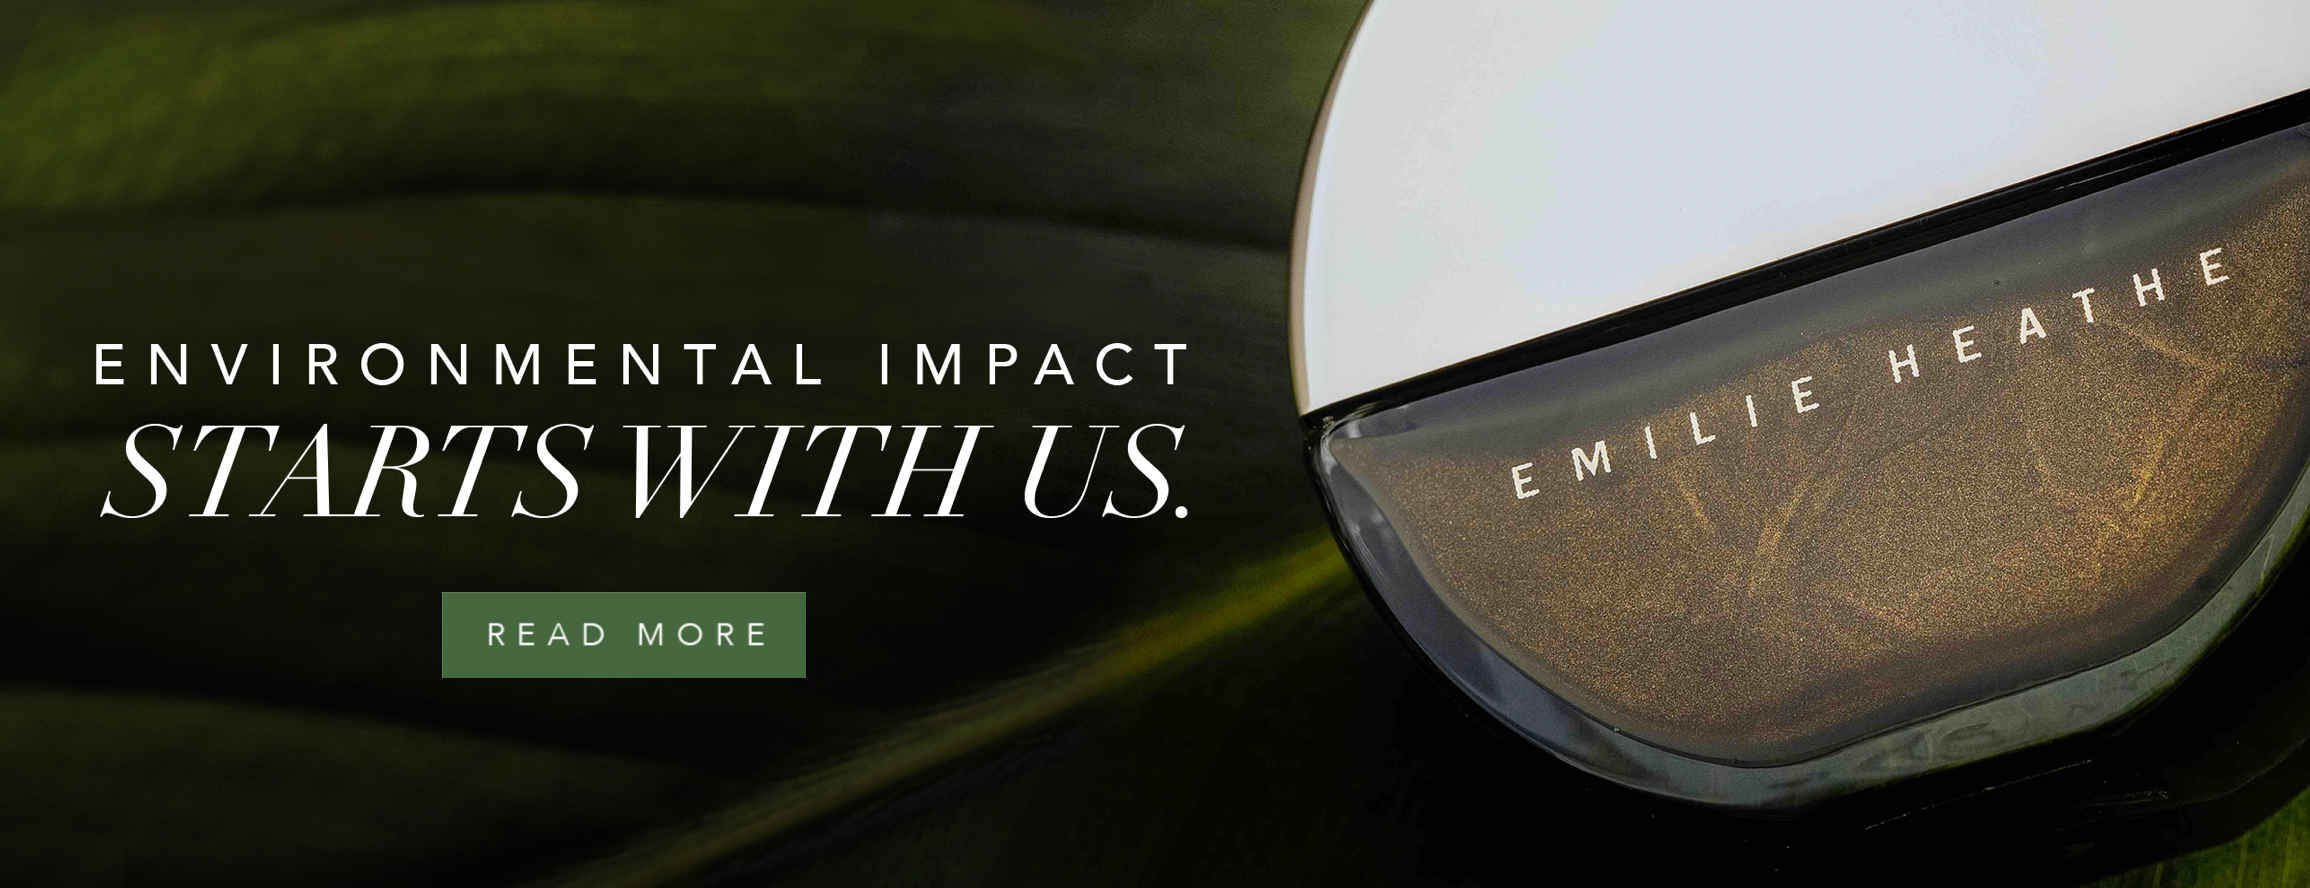 Environmental Impact and Sustainability